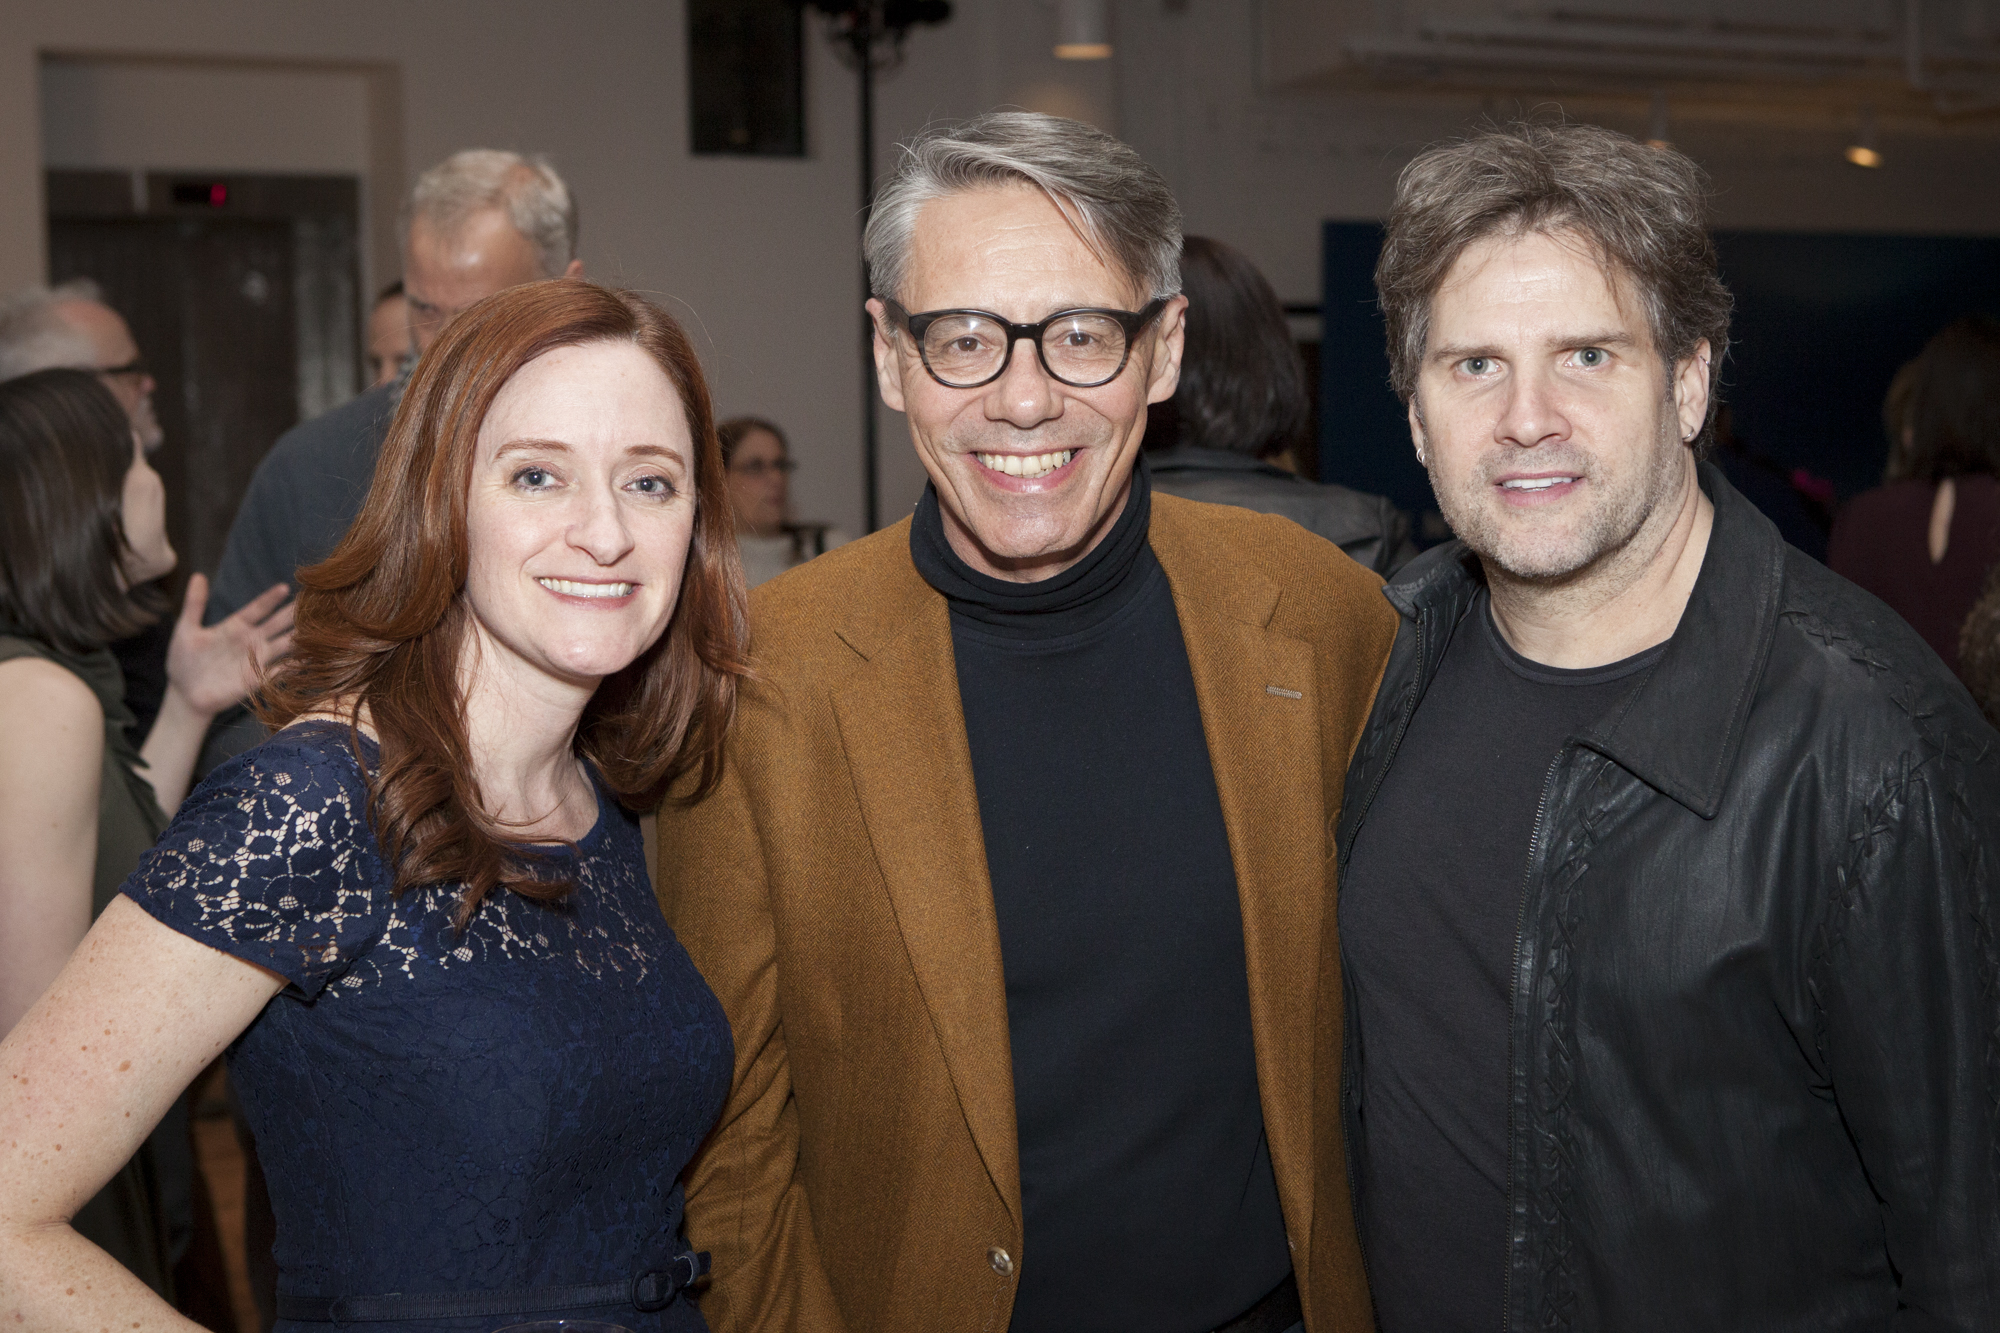 Veronica Arcaroli, director of the Architect and Designer Segment at Benjamin Moore; Ken Wampler, executive director at Alpha Workshops; and Darrin Varden, designer